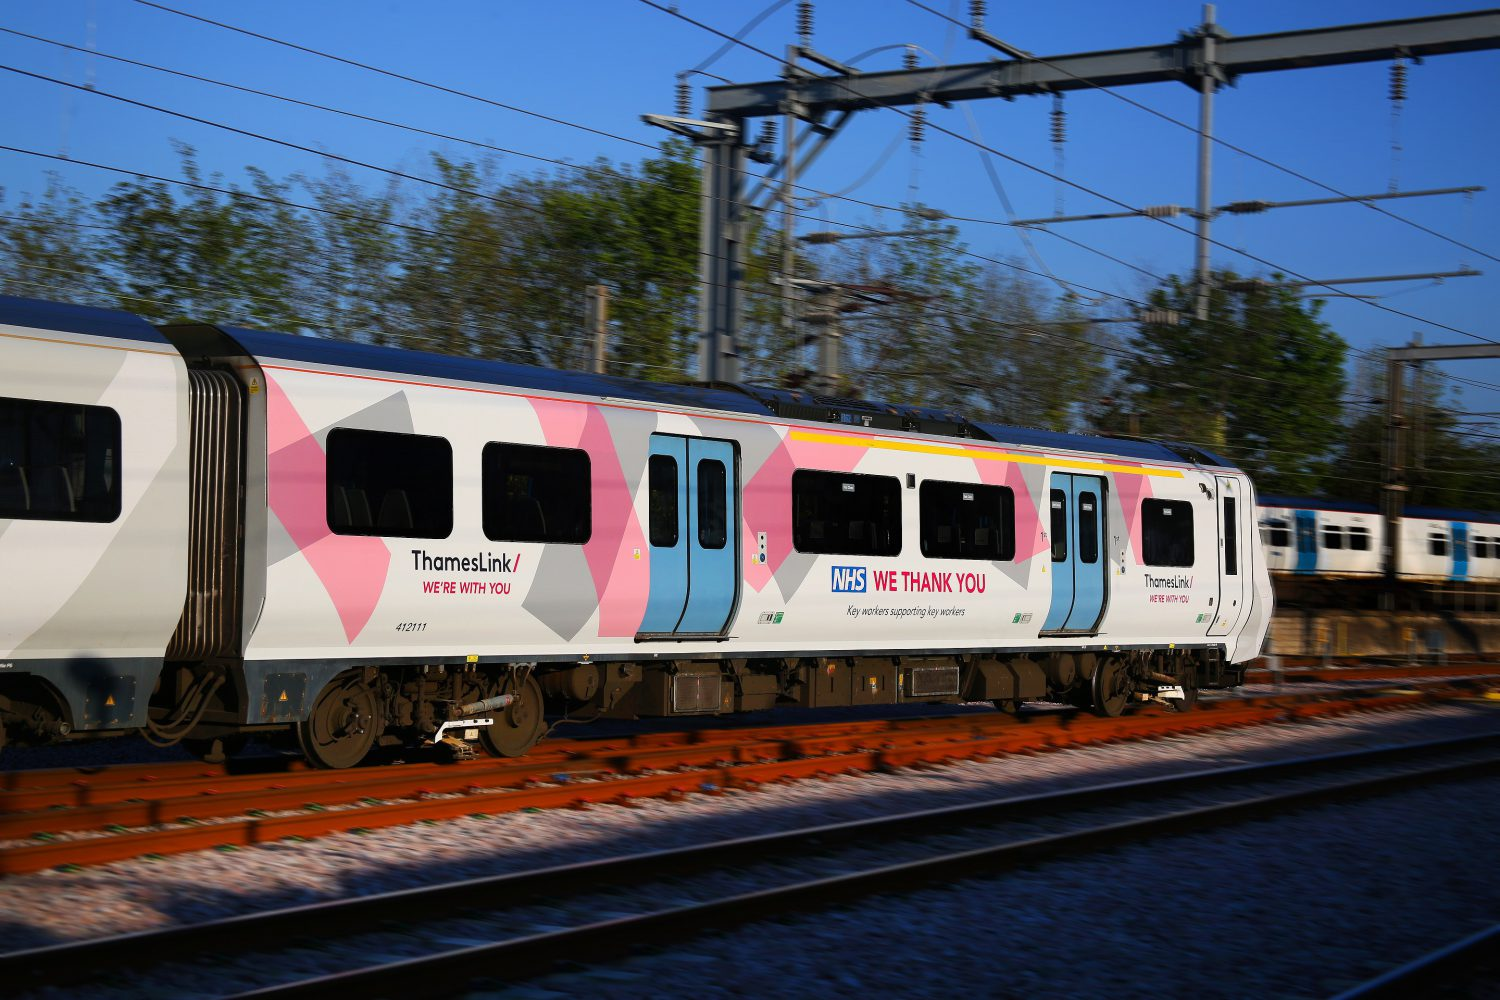 Specially key worker branded Thameslink train